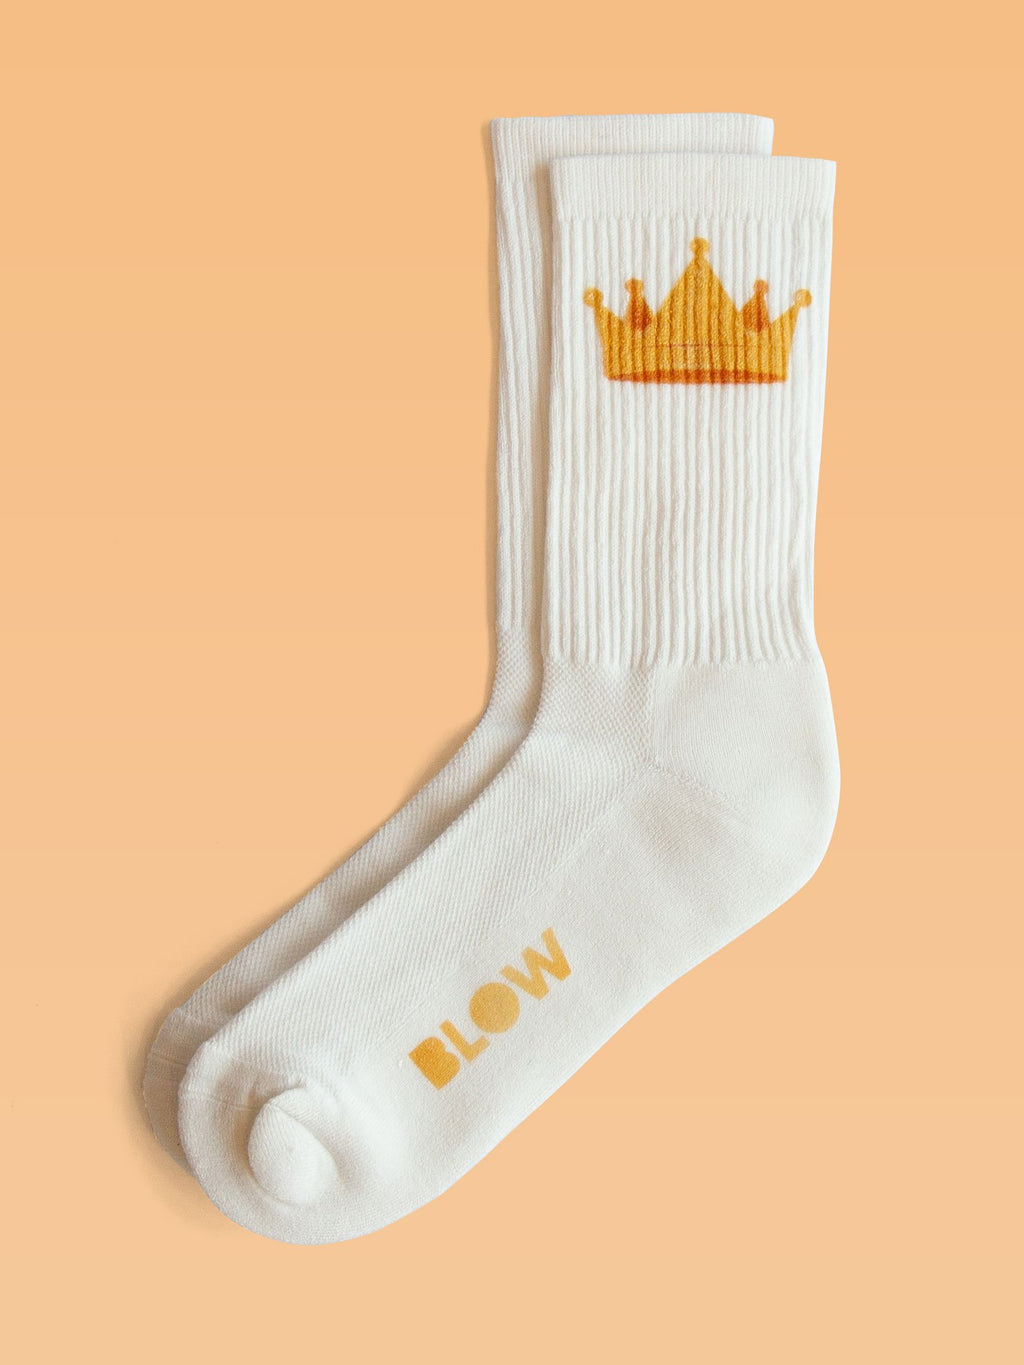 THE KING - Organic cotton crew socks with bamboo - BLOW London